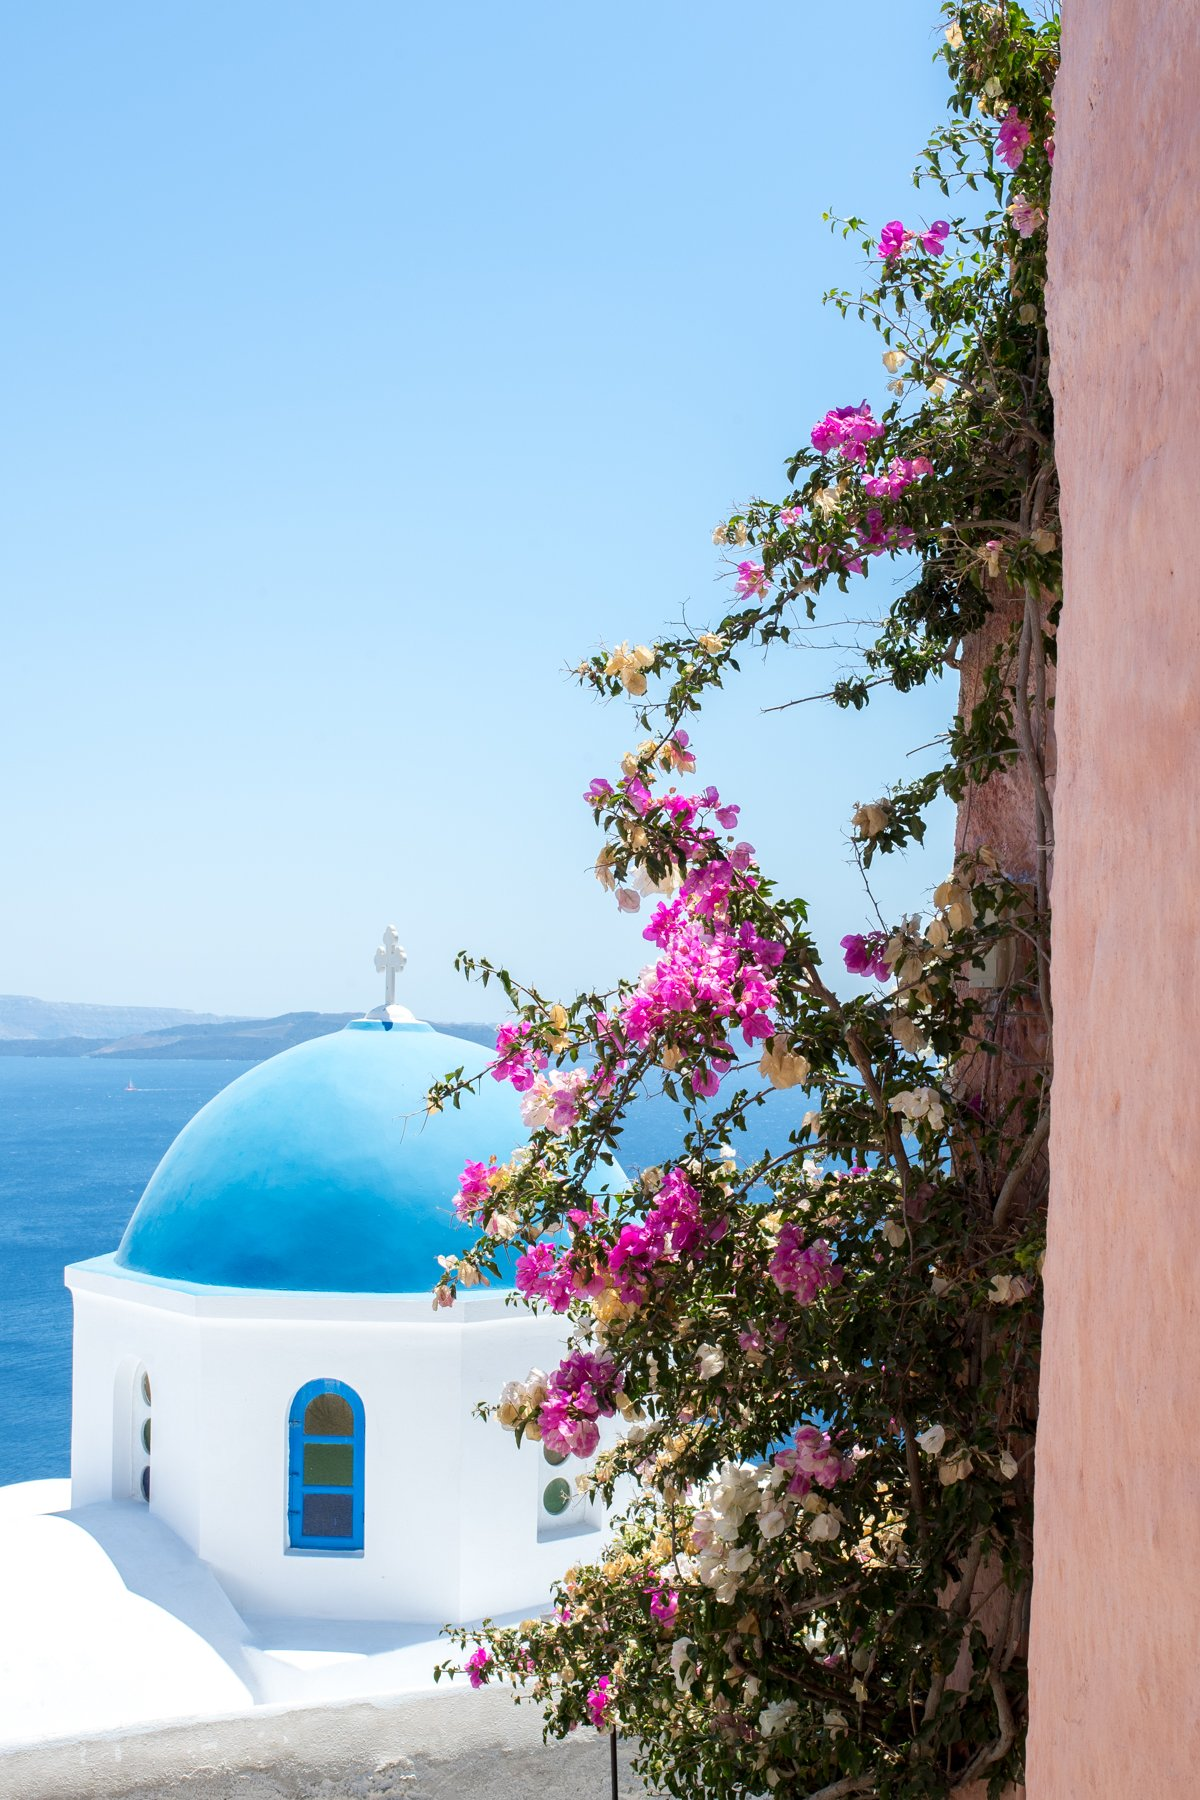 Stacie Flinner Travel Guide Santorini Greece-16.jpg